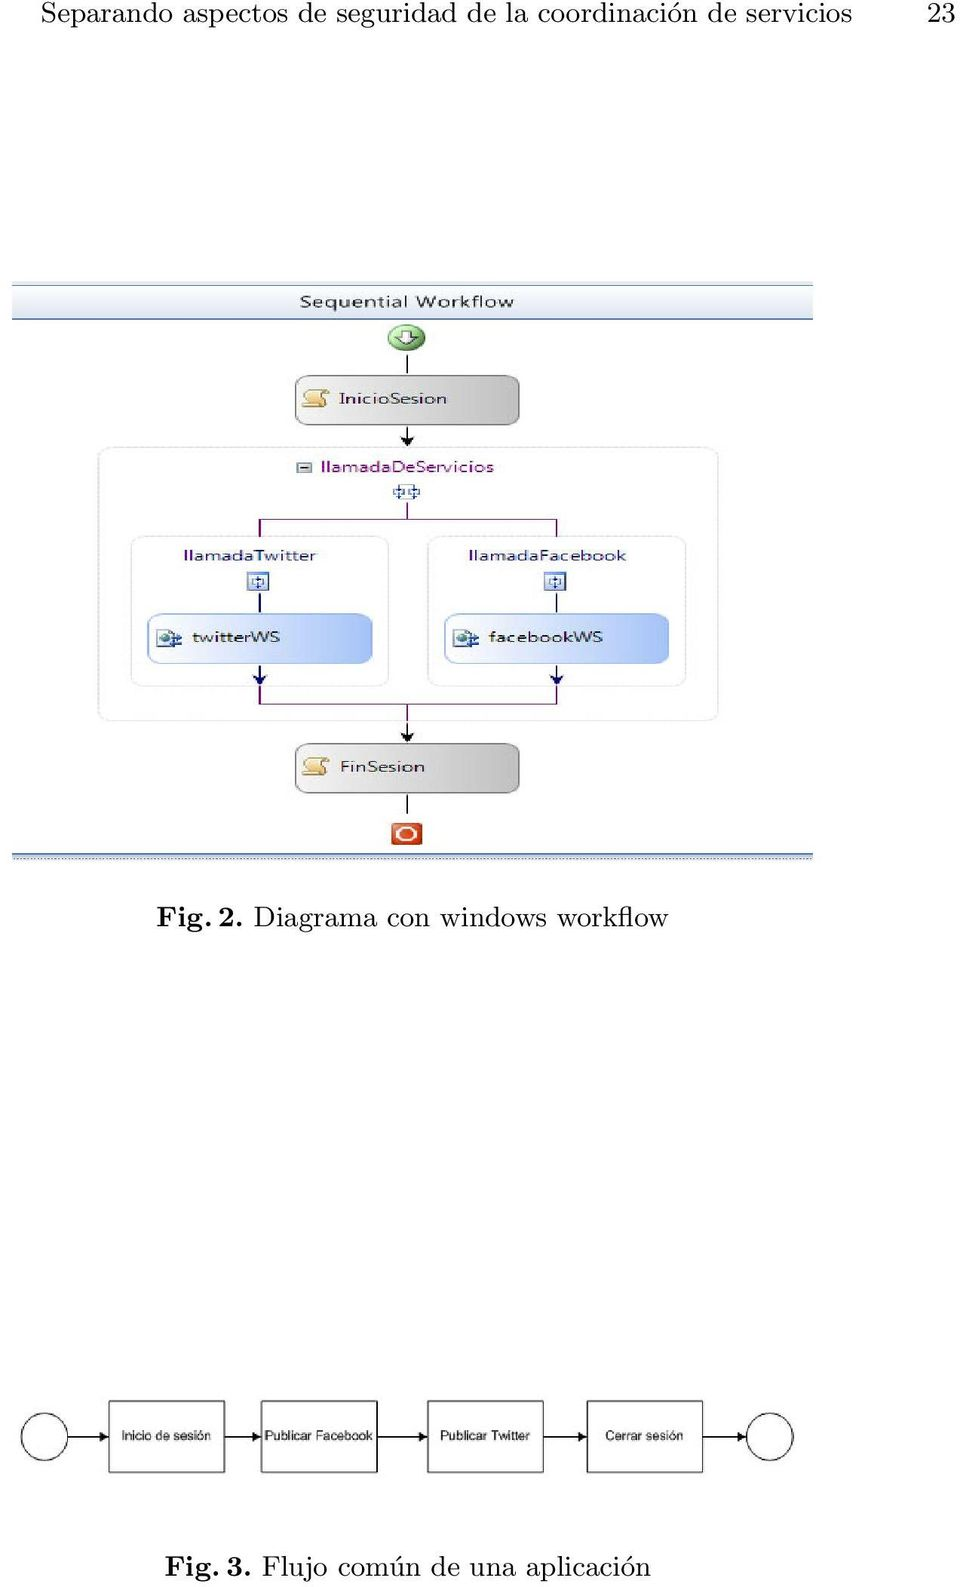 2. Diagrama con windows workflow